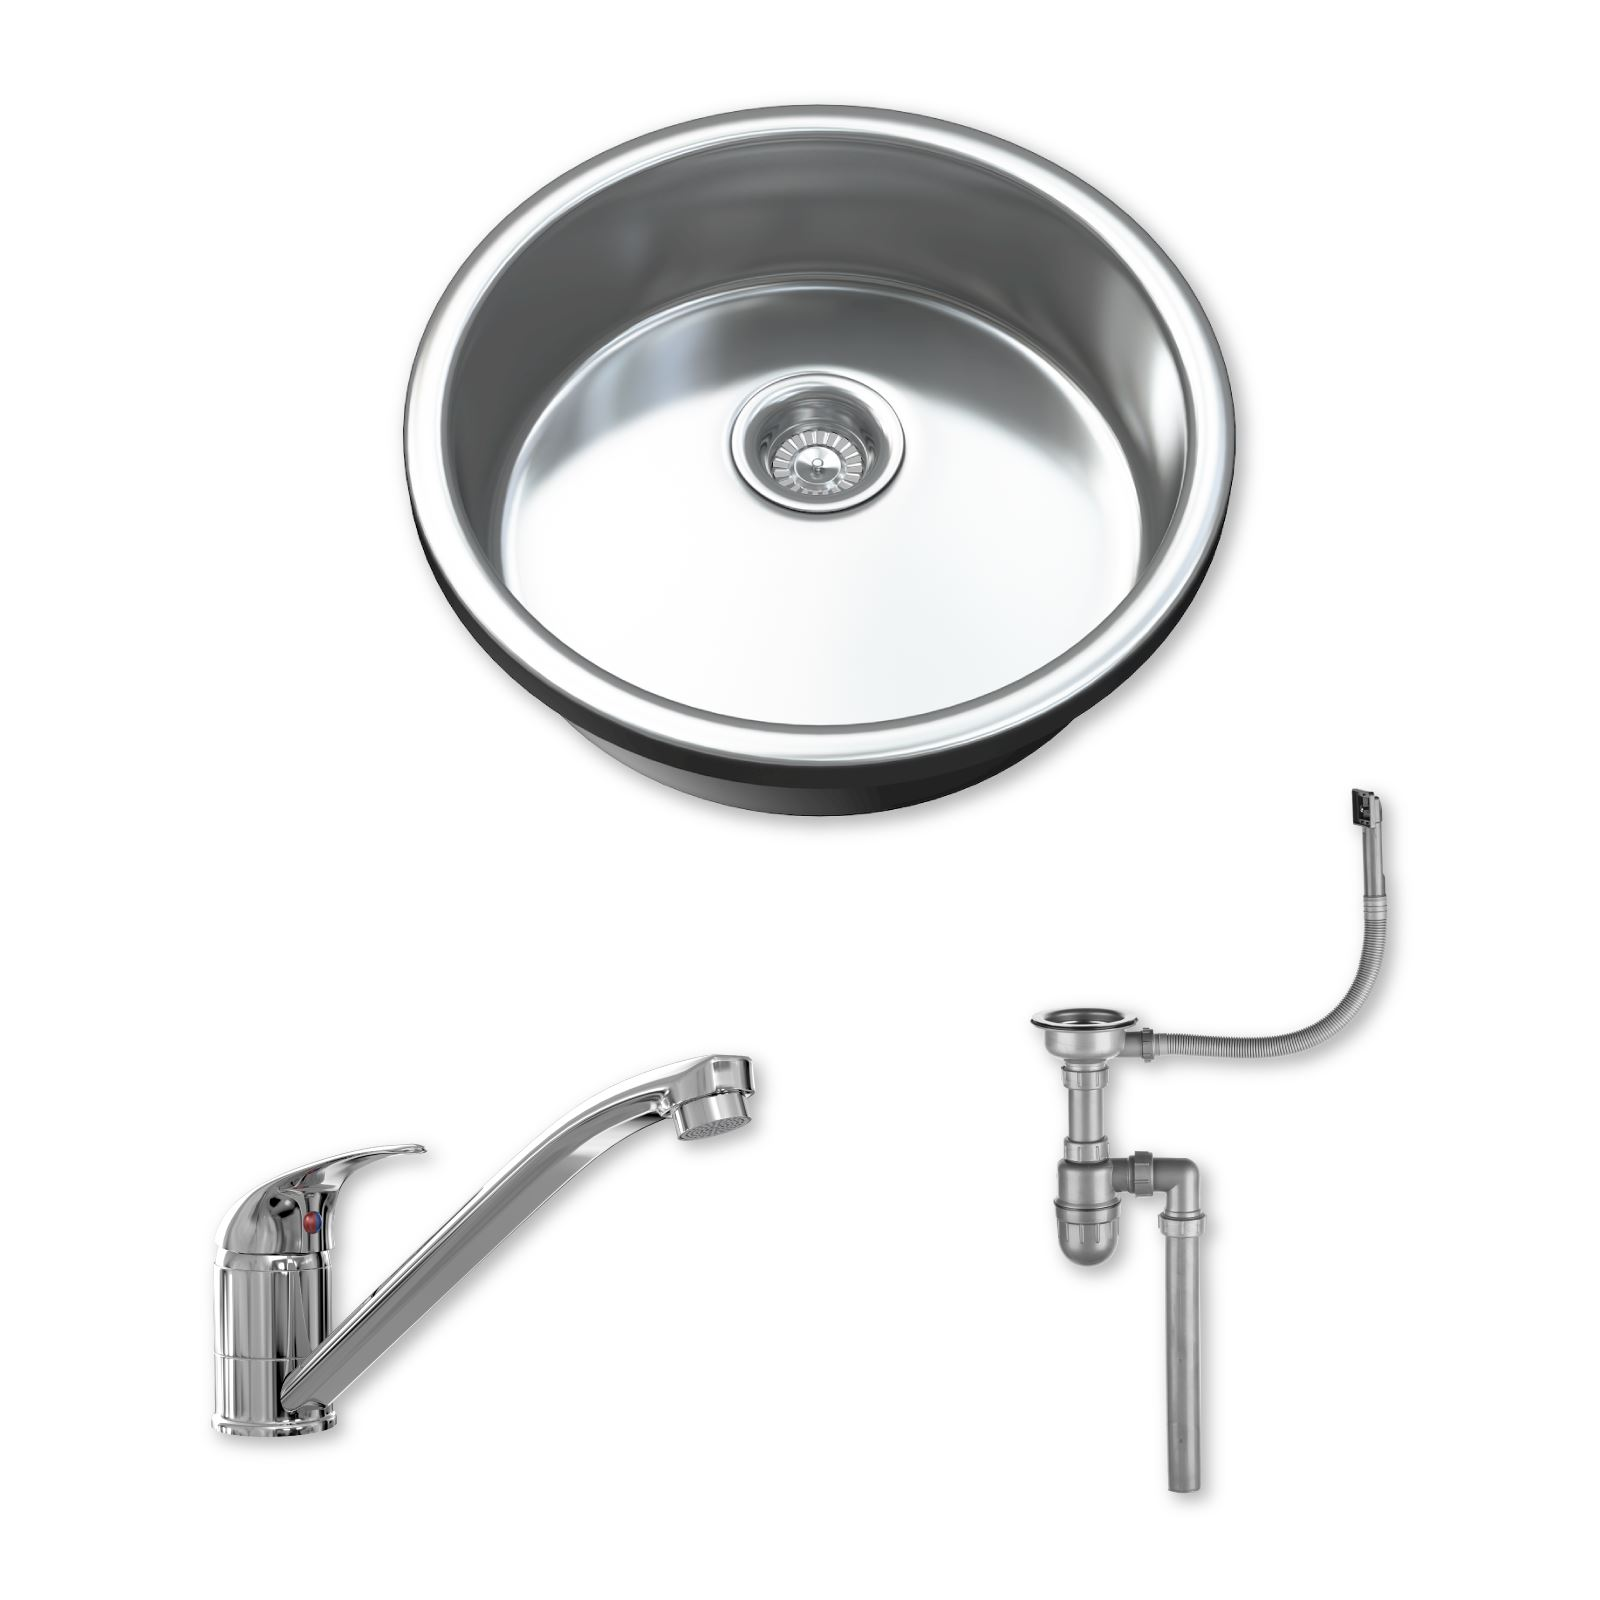 1.0 Single Bowl Stainless Steel Kitchen Sink with Tap, Drainer & Waste 1091